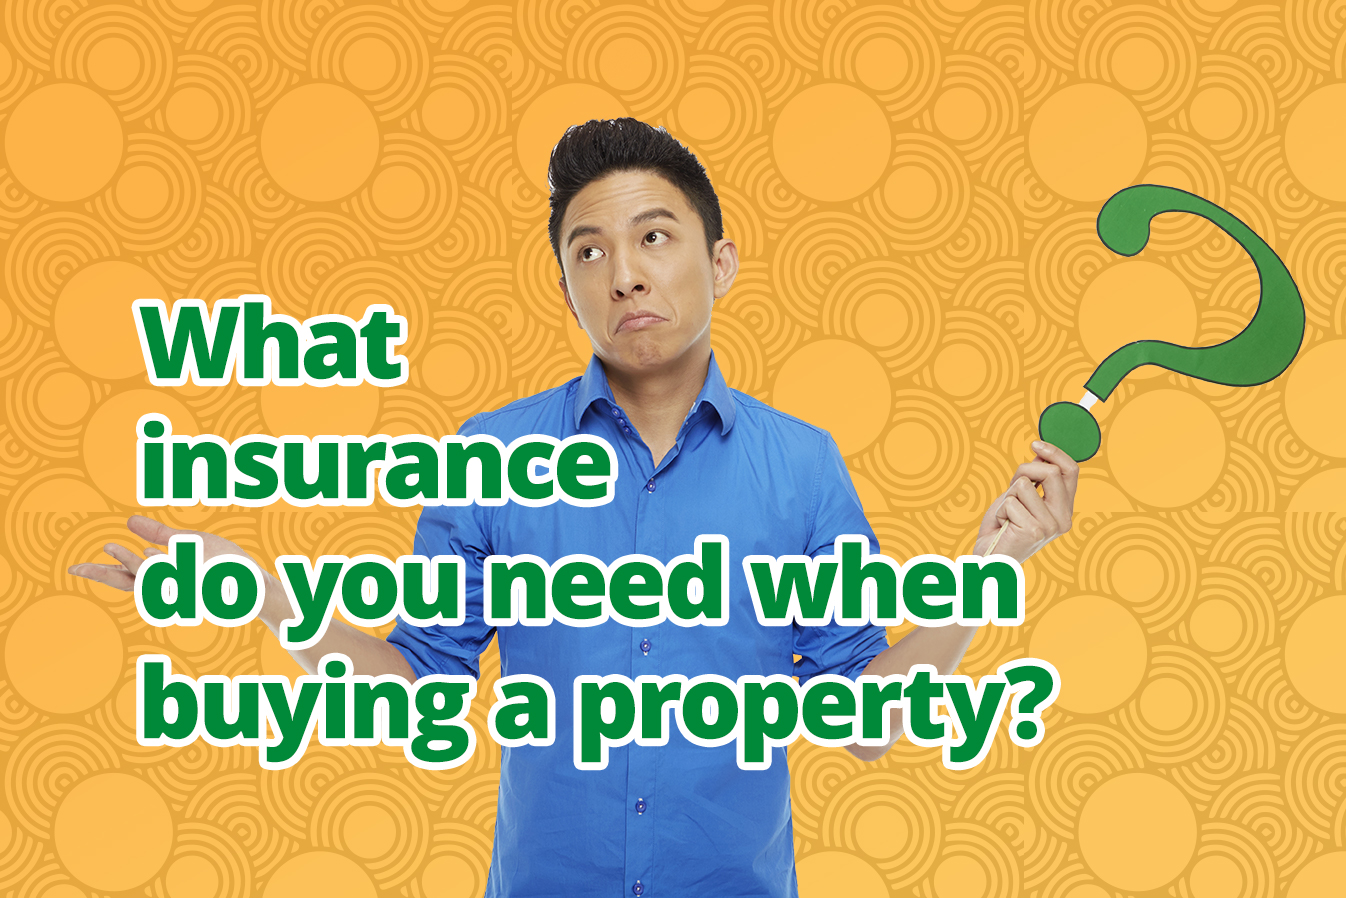 What insurance do you need when buying property?